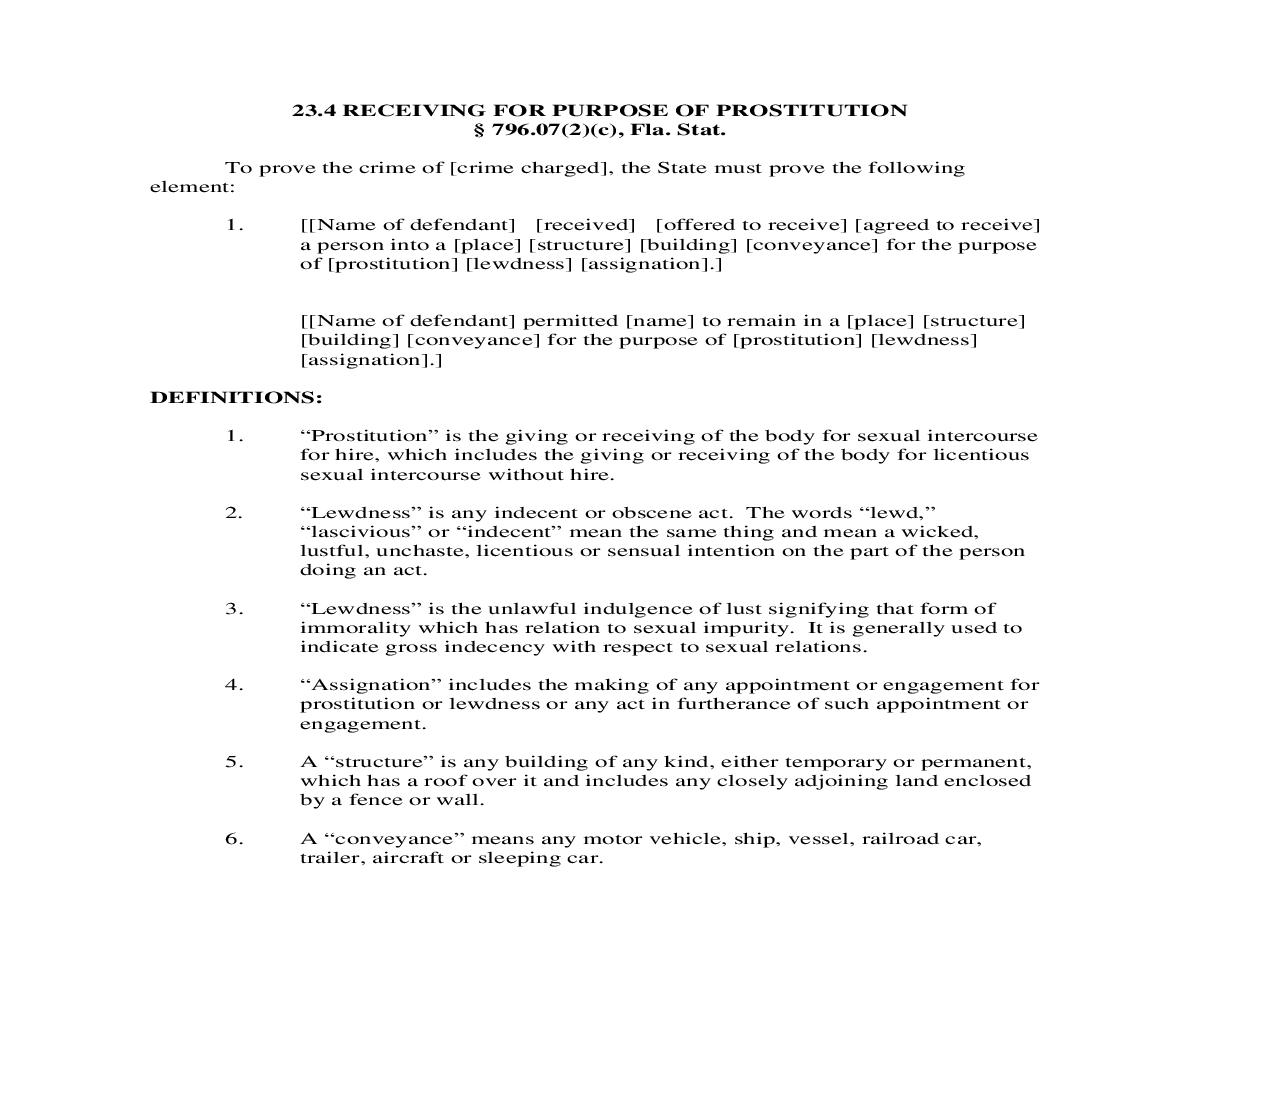 23.4. Receiving For Purpose Of Prostitution | Pdf Doc Docx | Florida_JI